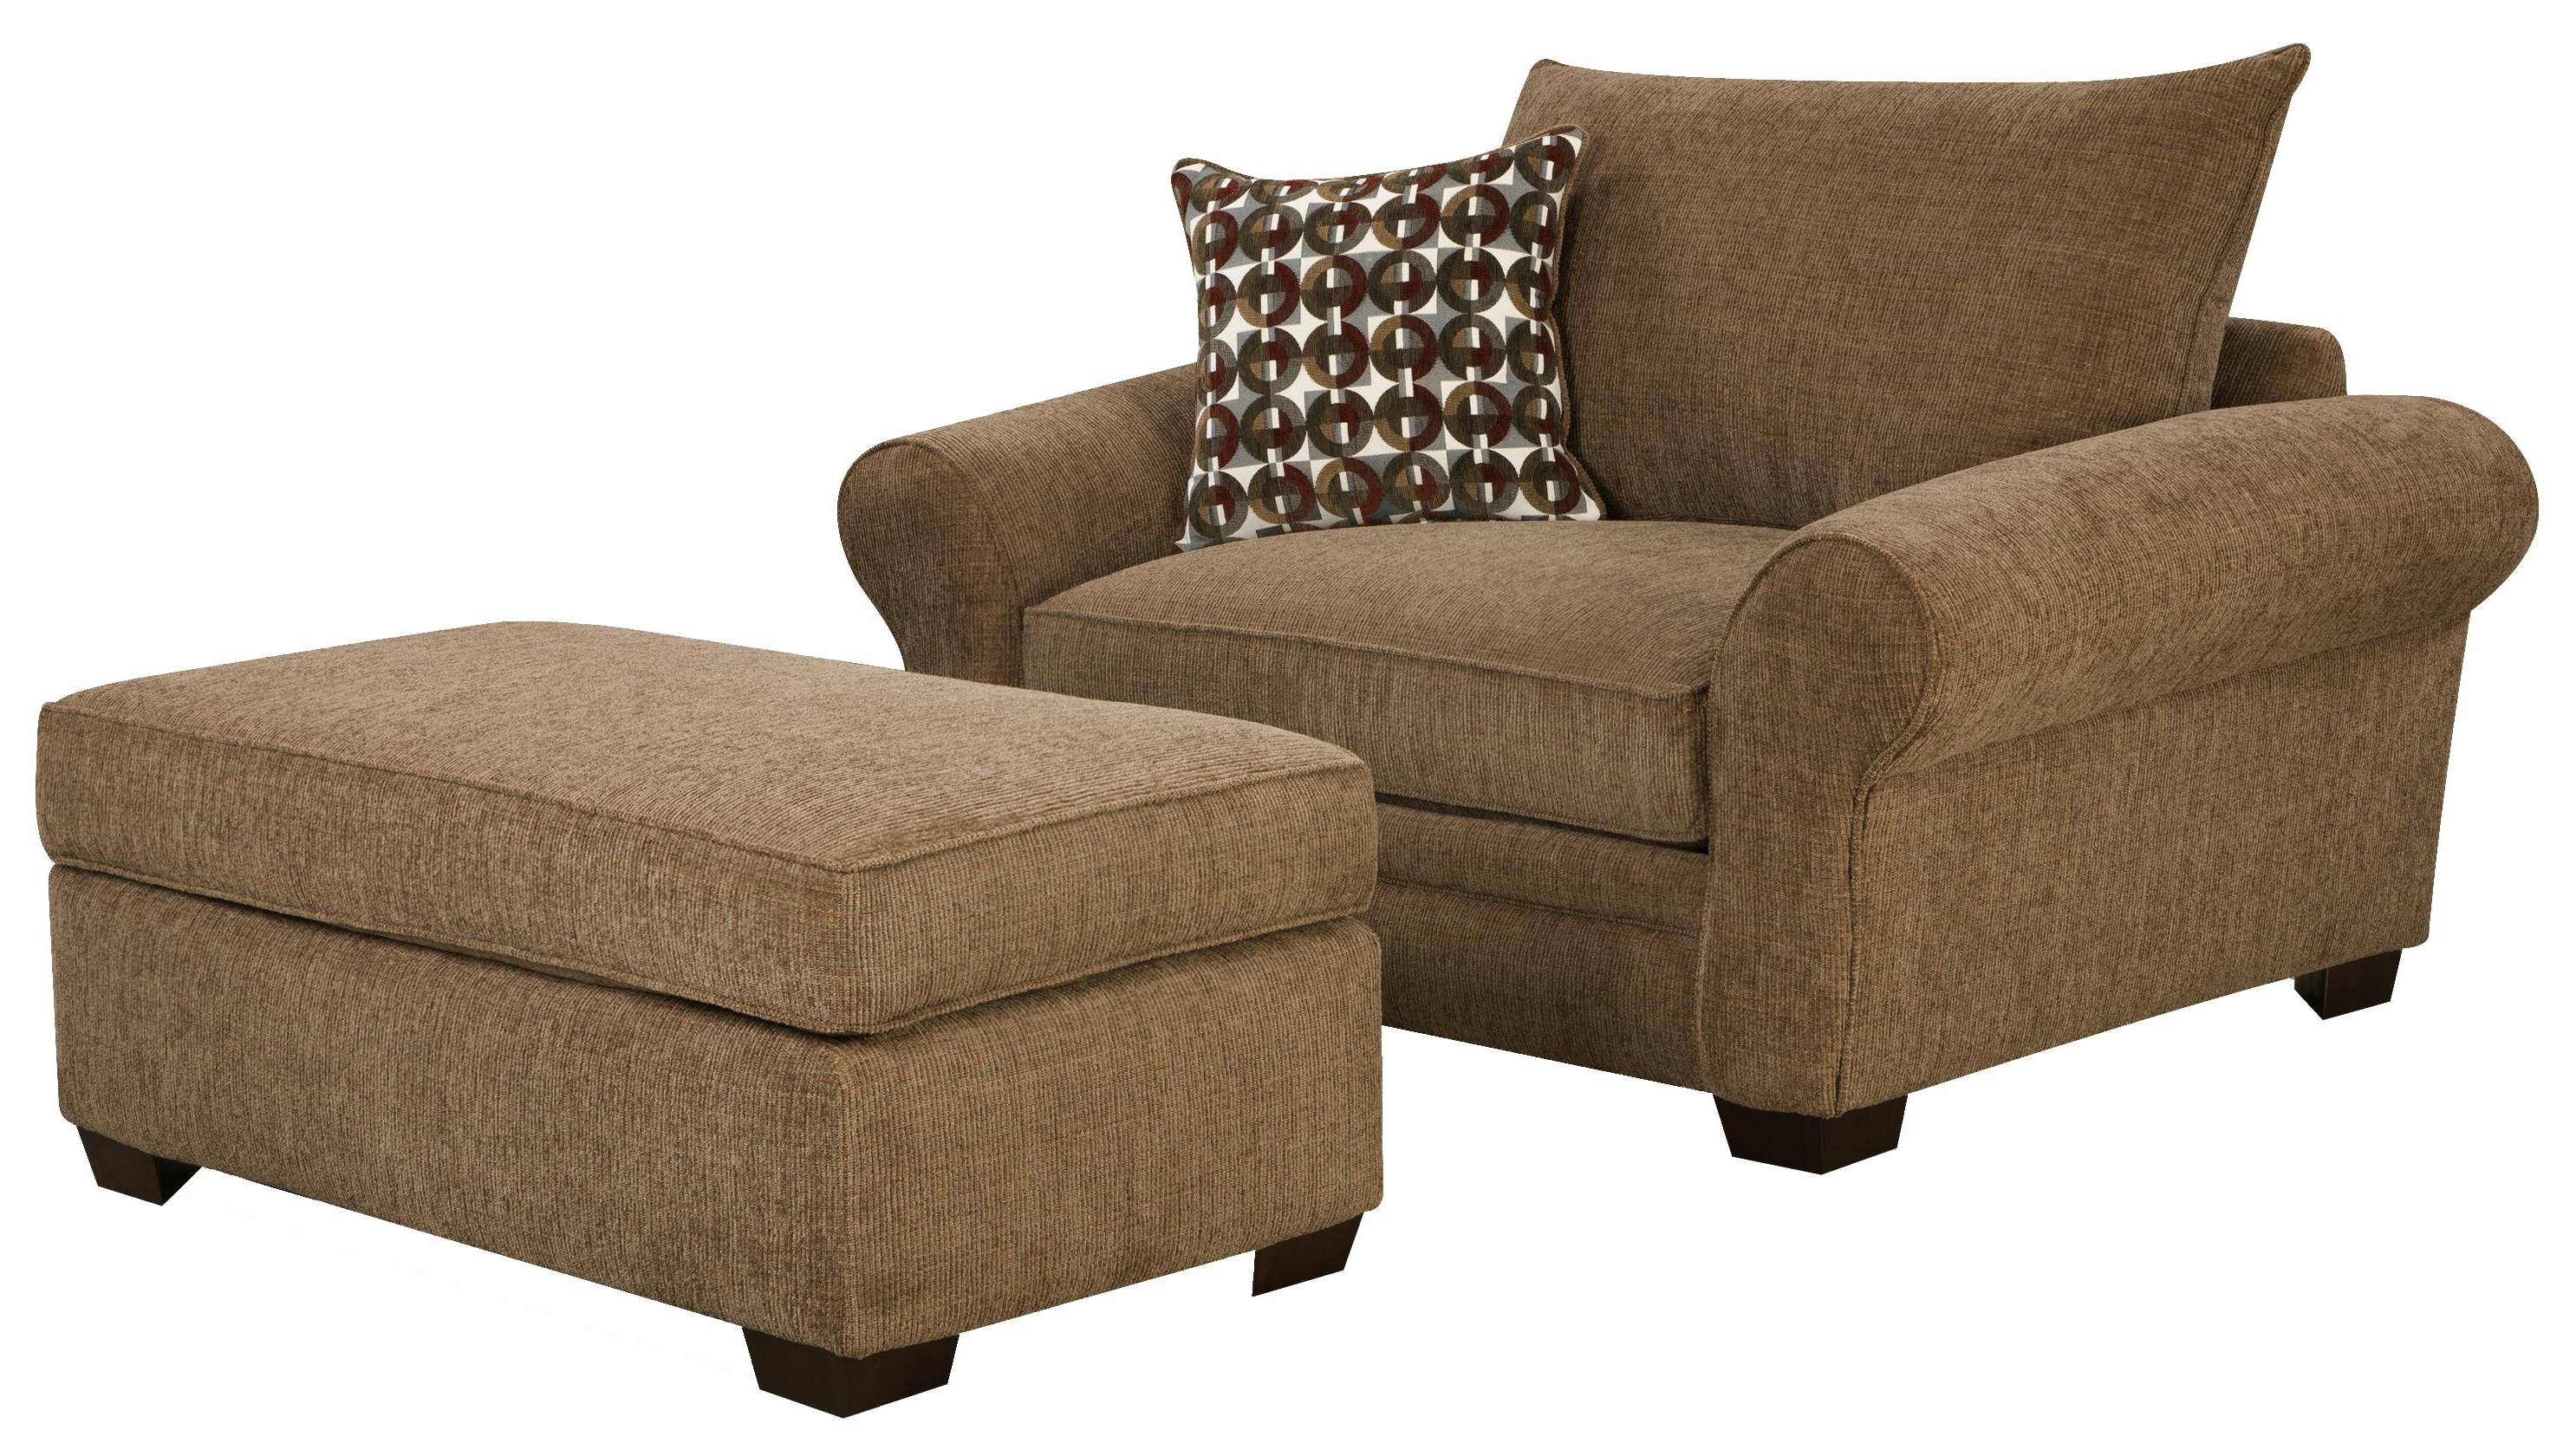 Well Known Big Sofa Chairs With Regard To Extra Large Chair And A Half & Ottoman Set For Casual Styled (View 2 of 20)